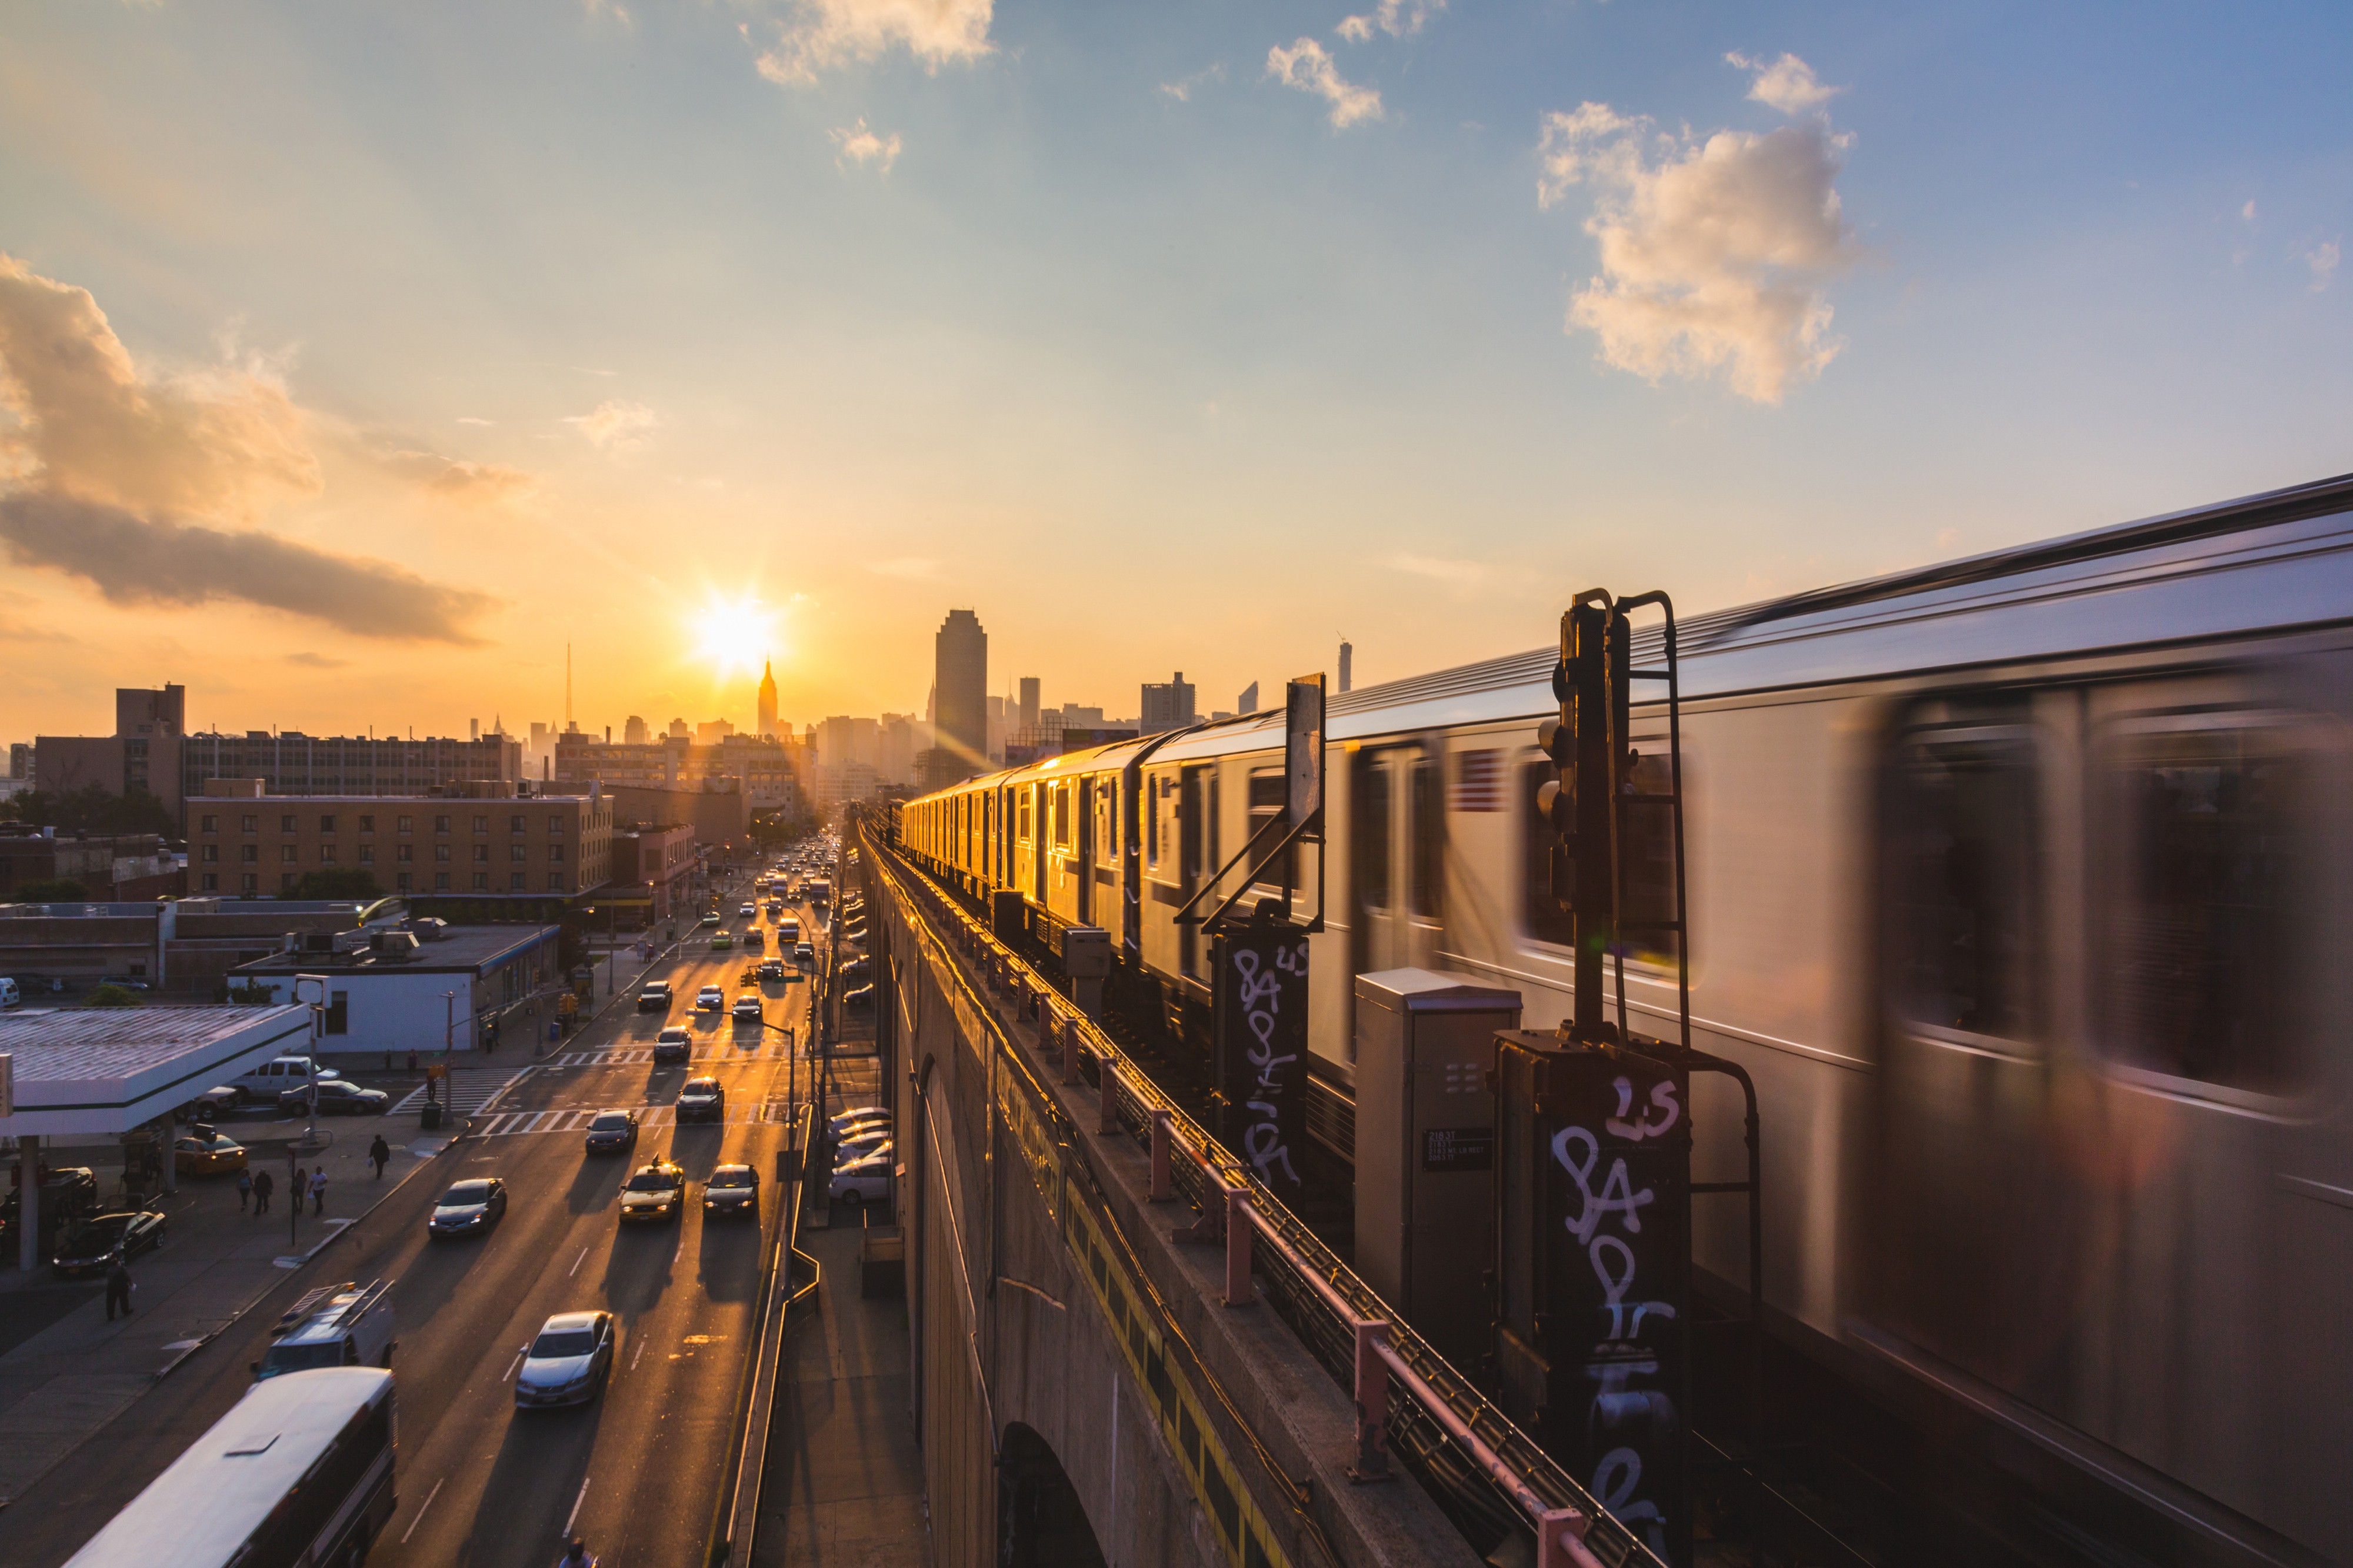 An elevated train rides through New York City at sunset.